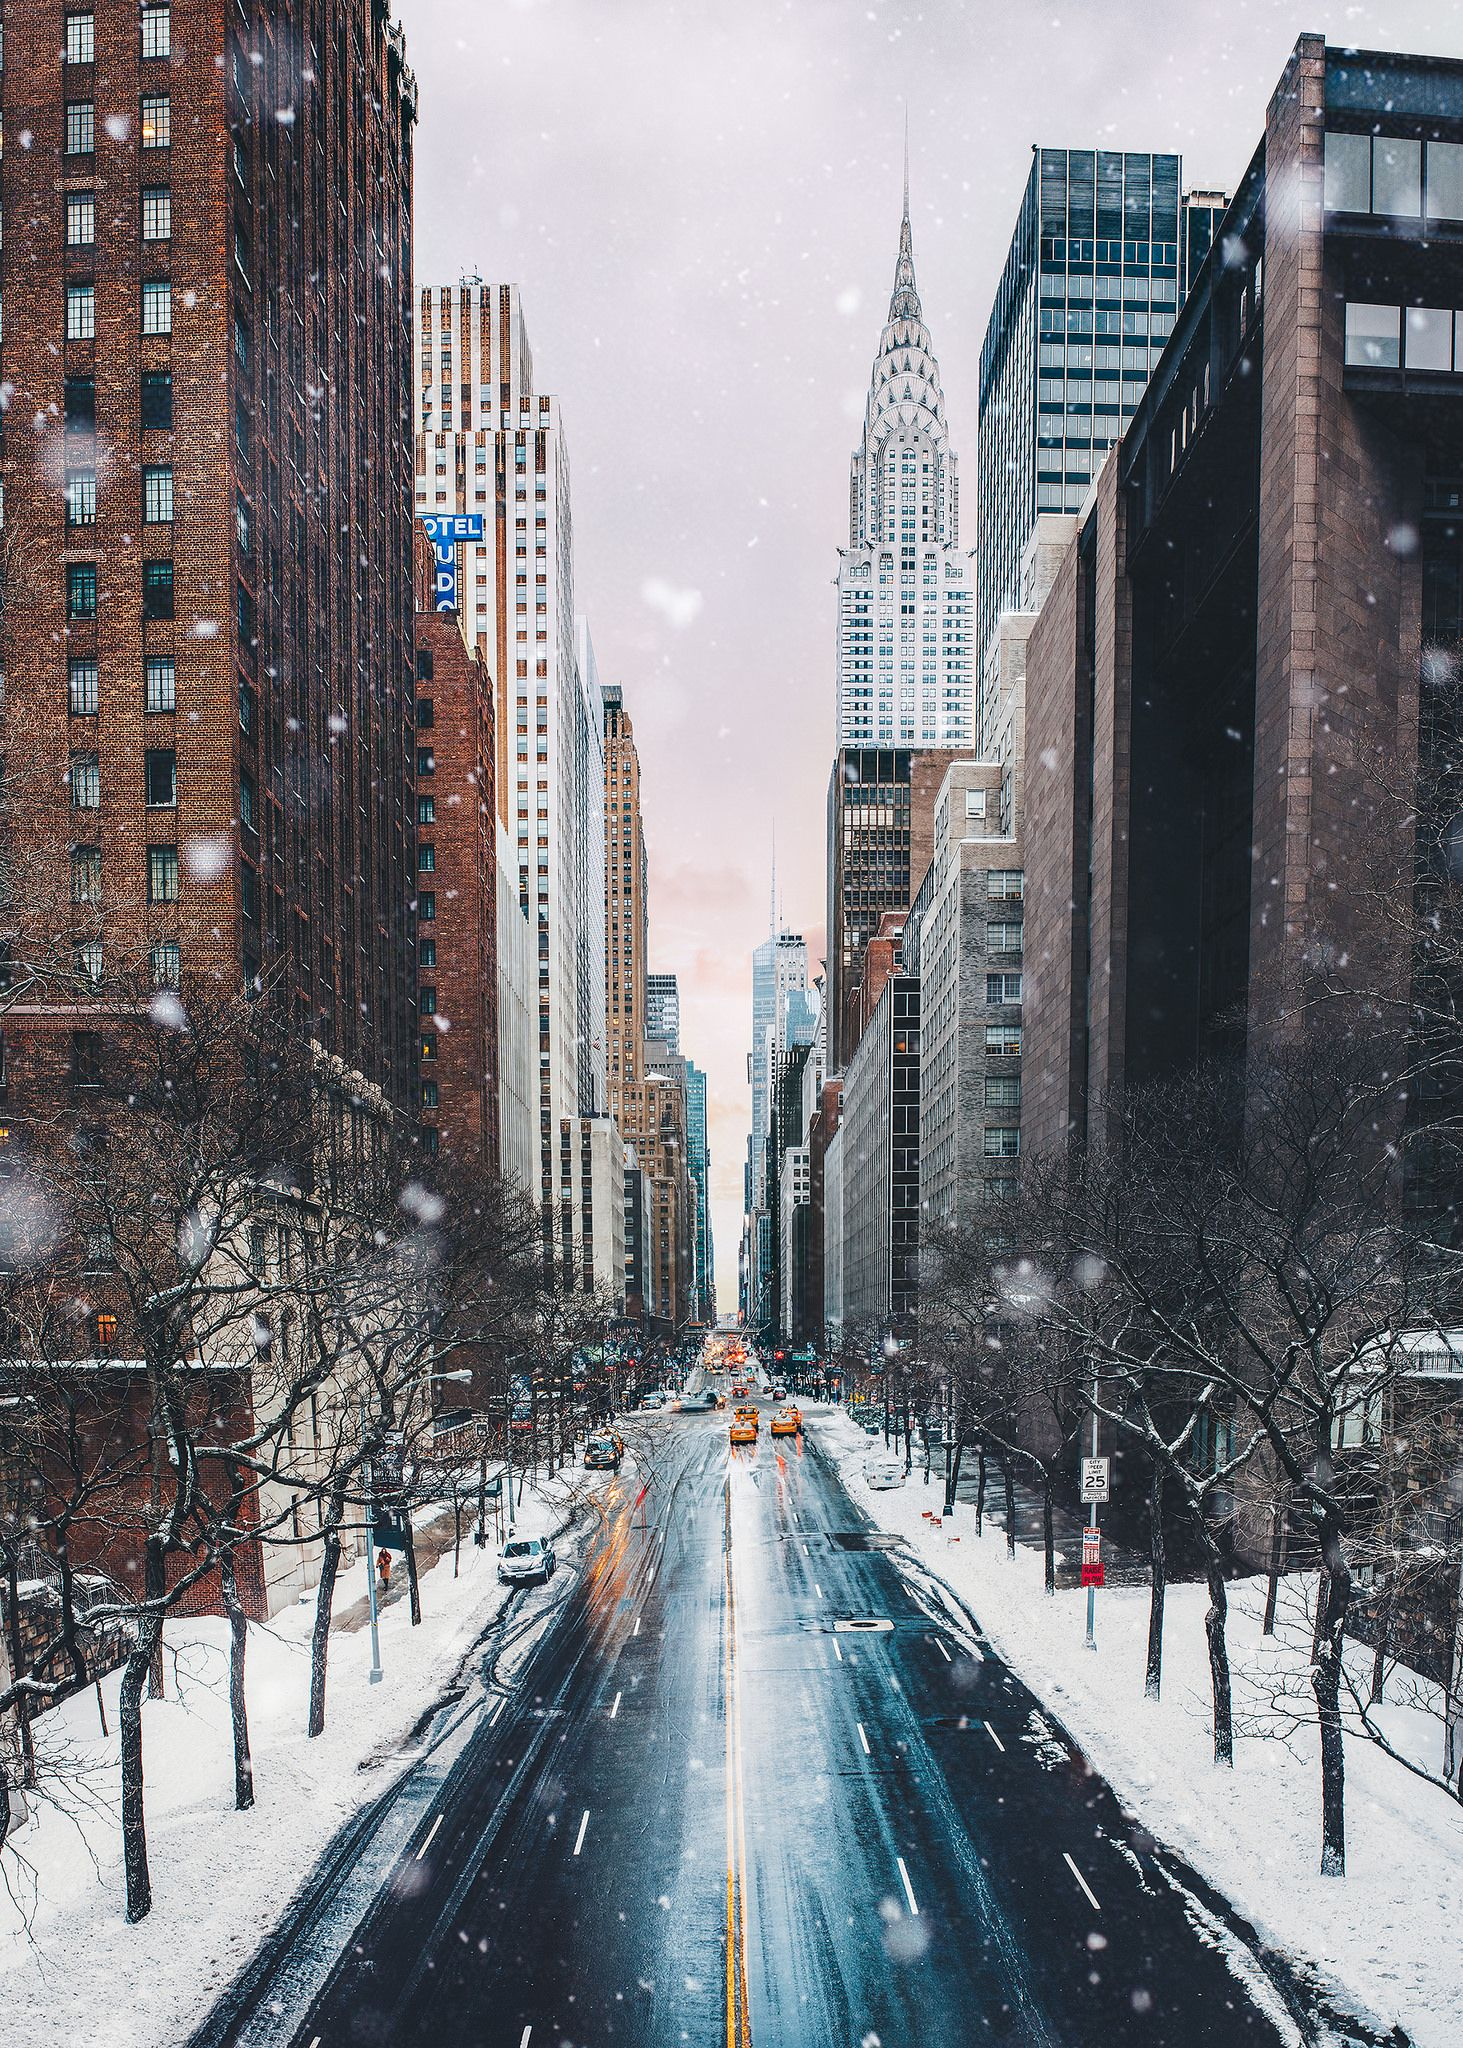 New York City Christmas 3 Hd Wallpaper And Full Hd Wallpapers High Quality Desktop Wallpapers Add O New York City Christmas New York Christmas Nyc Christmas